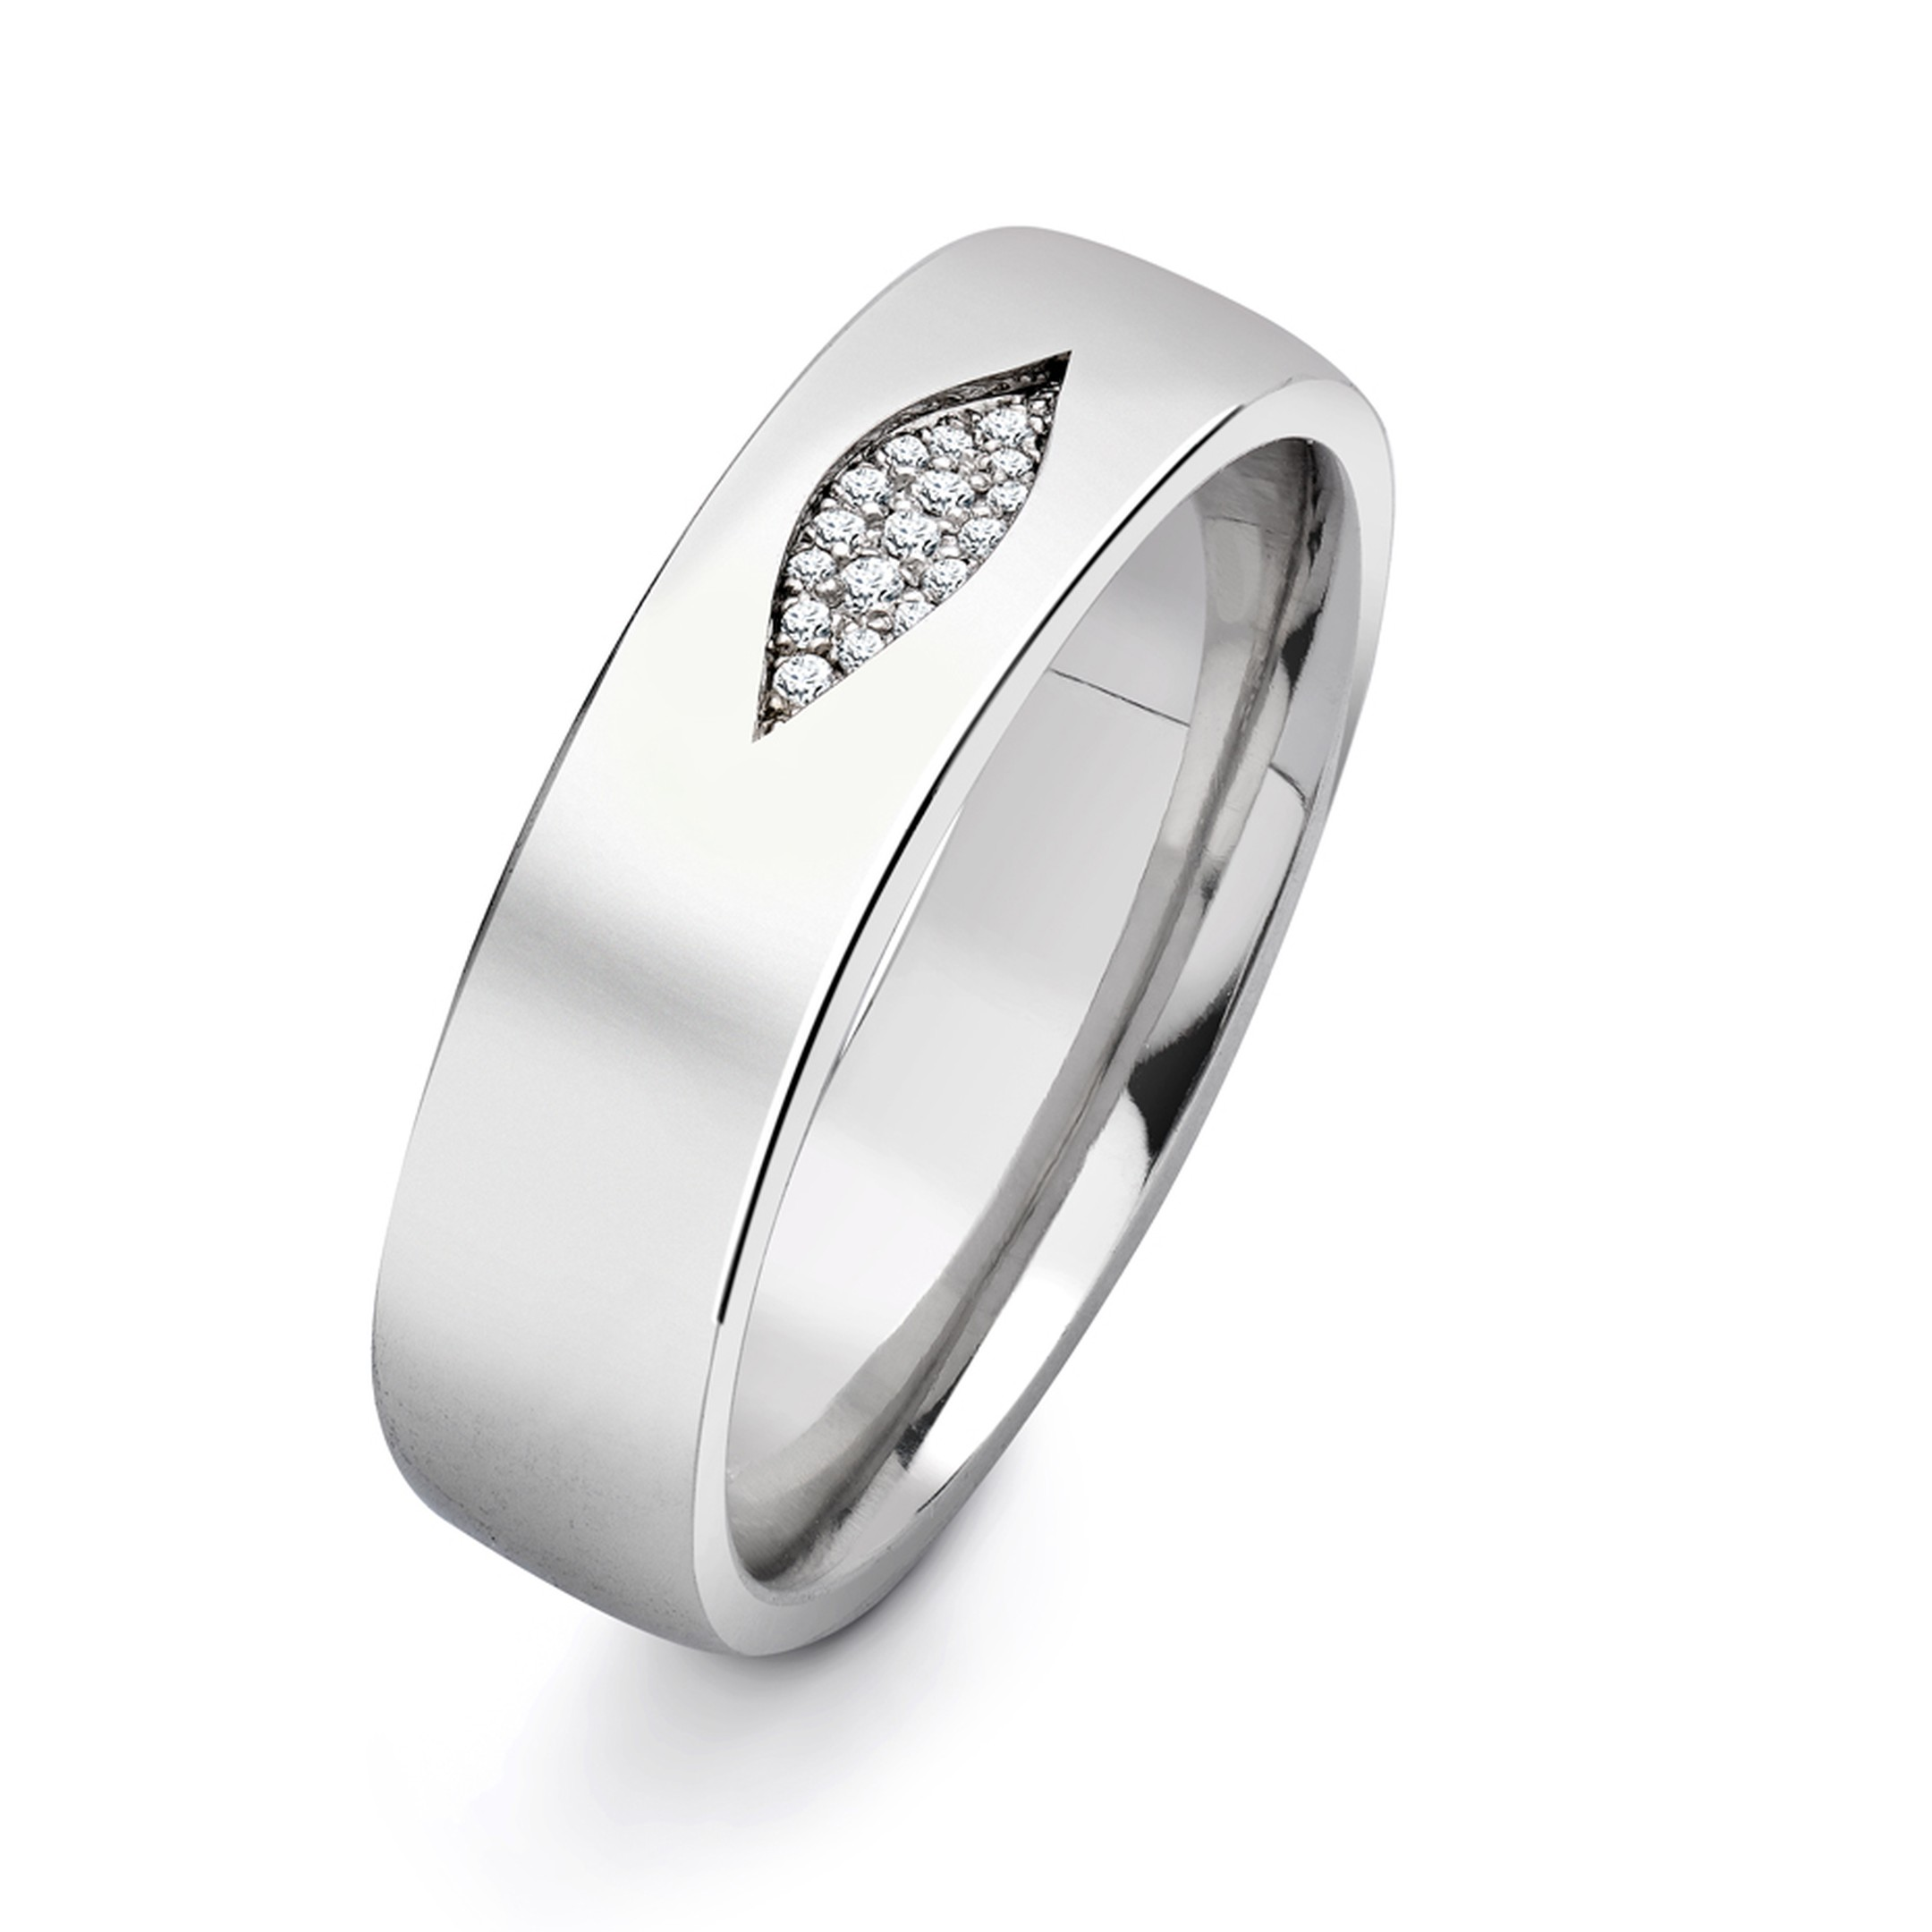 Andrew Geoghegan Reveal platinum ring featuring a sliver of diamond pavé